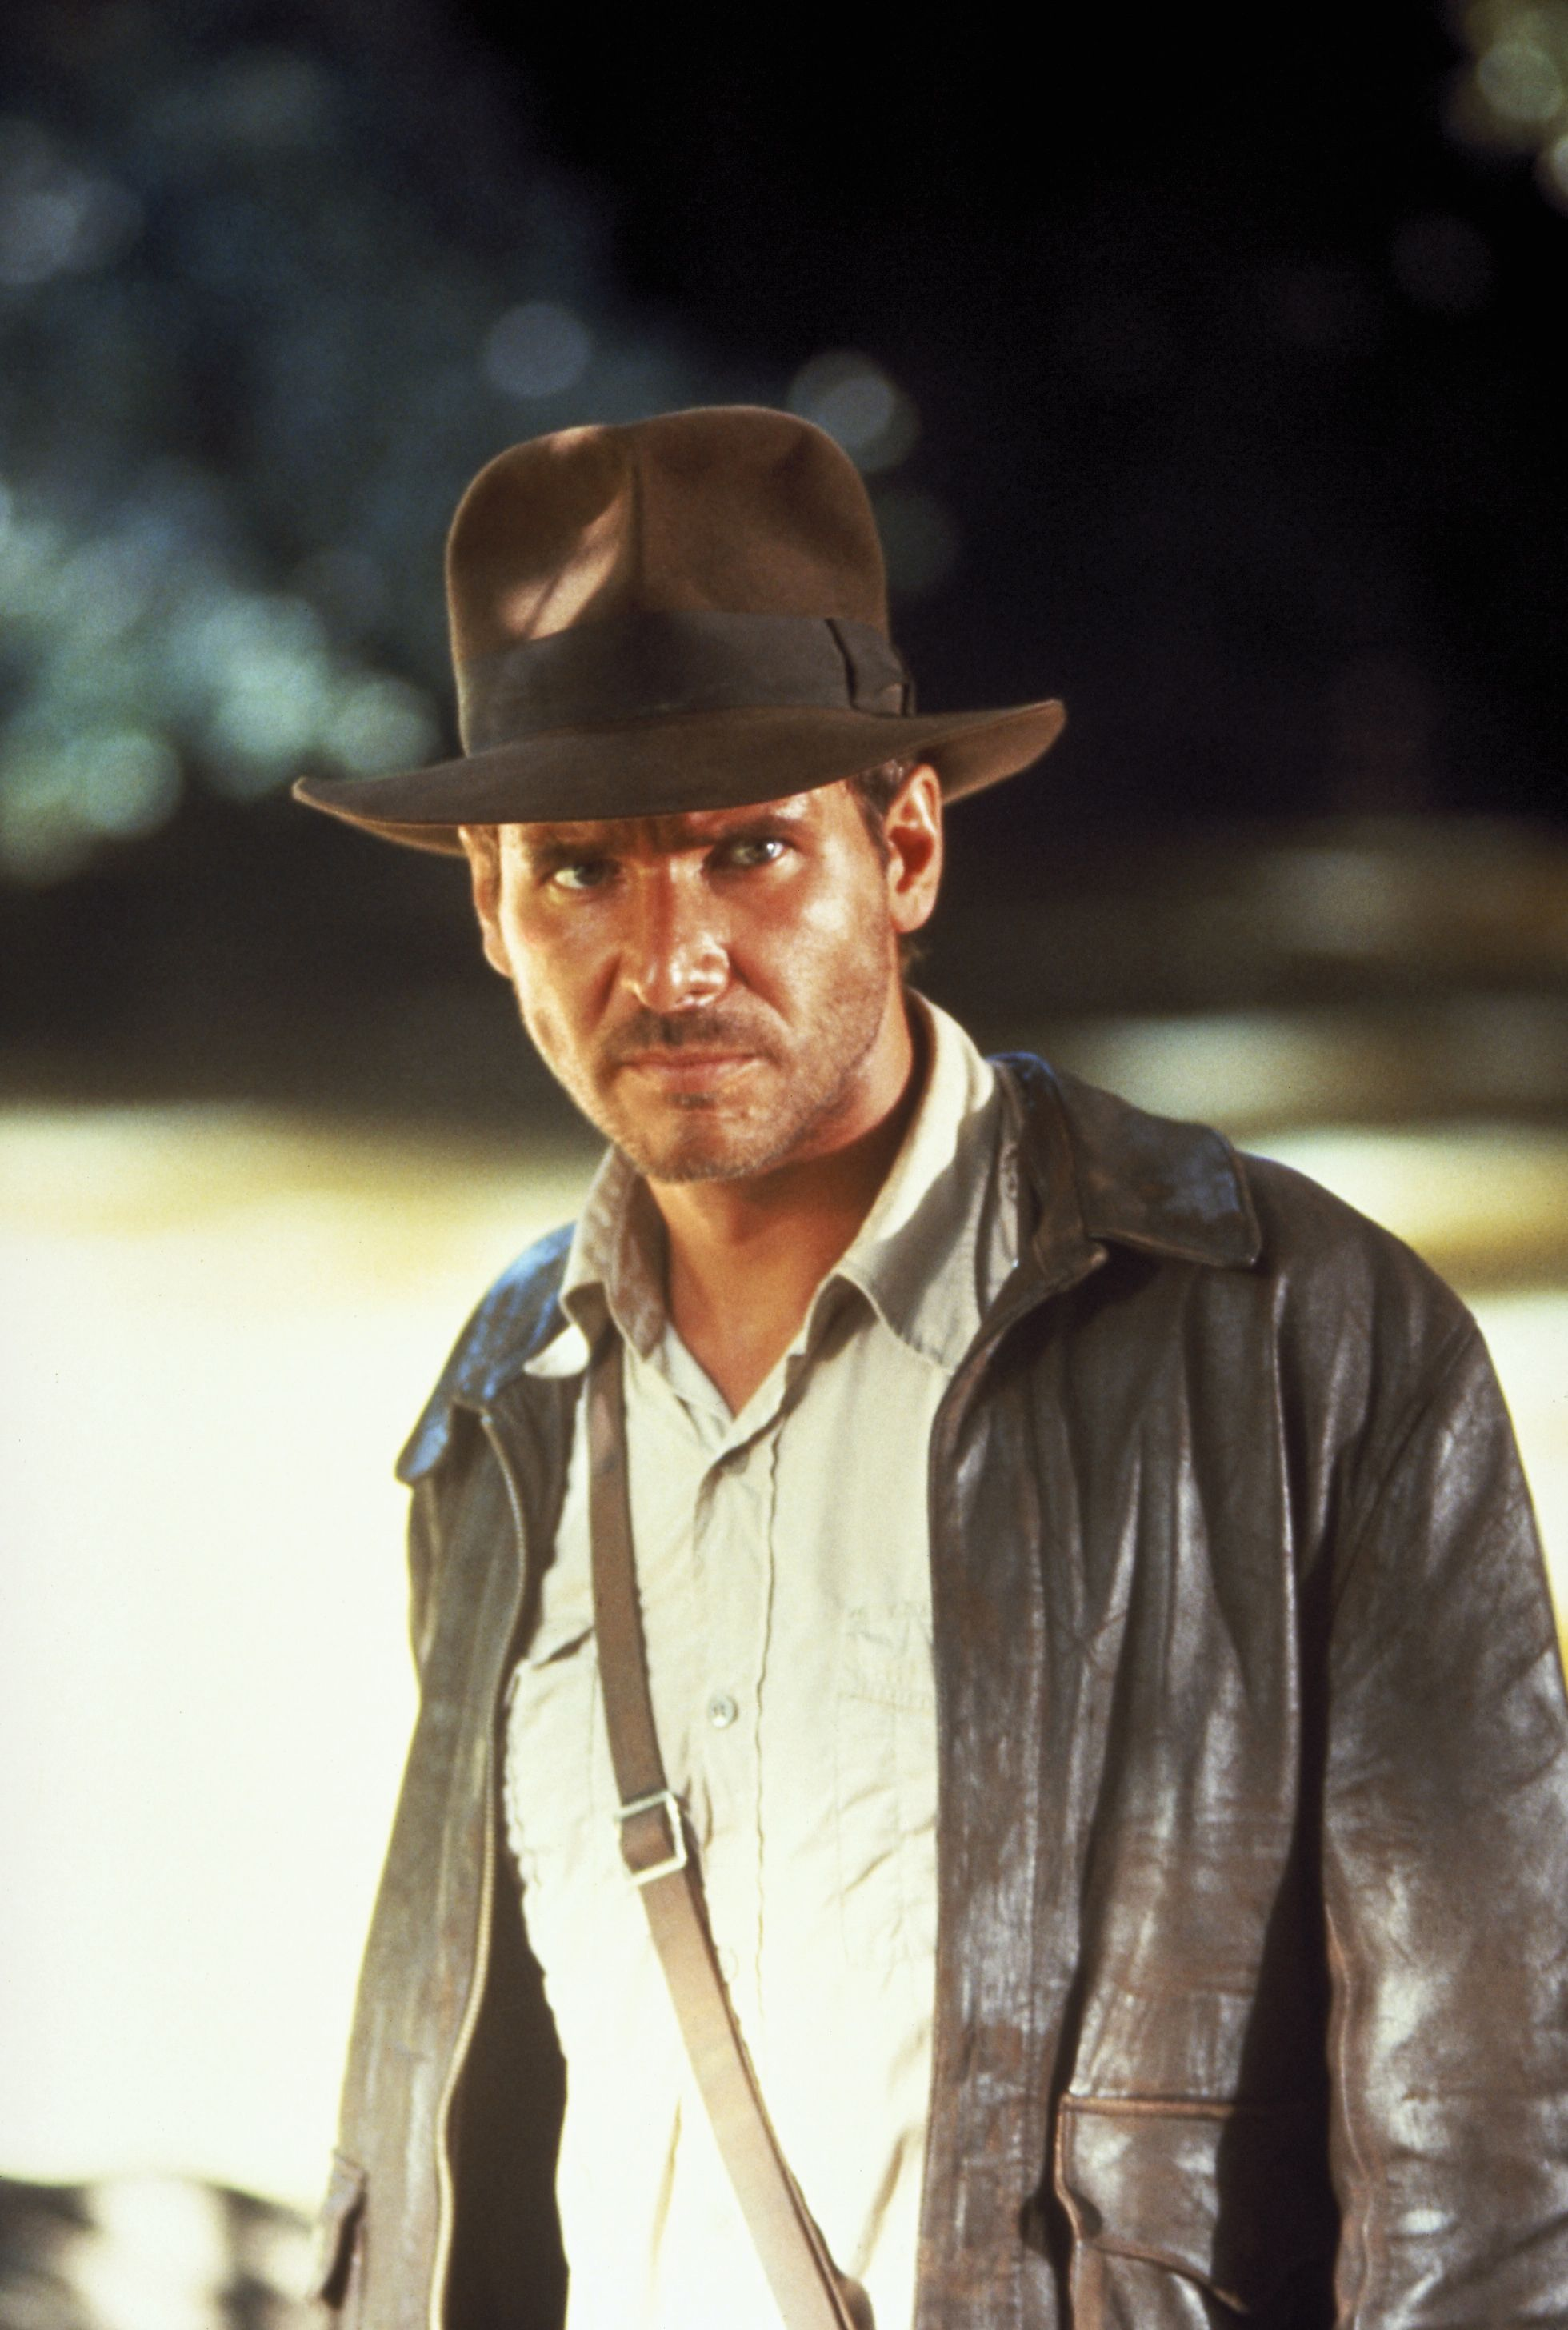 a846883caf8 Pin by Darren Harrison on Raiders of the Lost Ark (1981) in 2019 ...